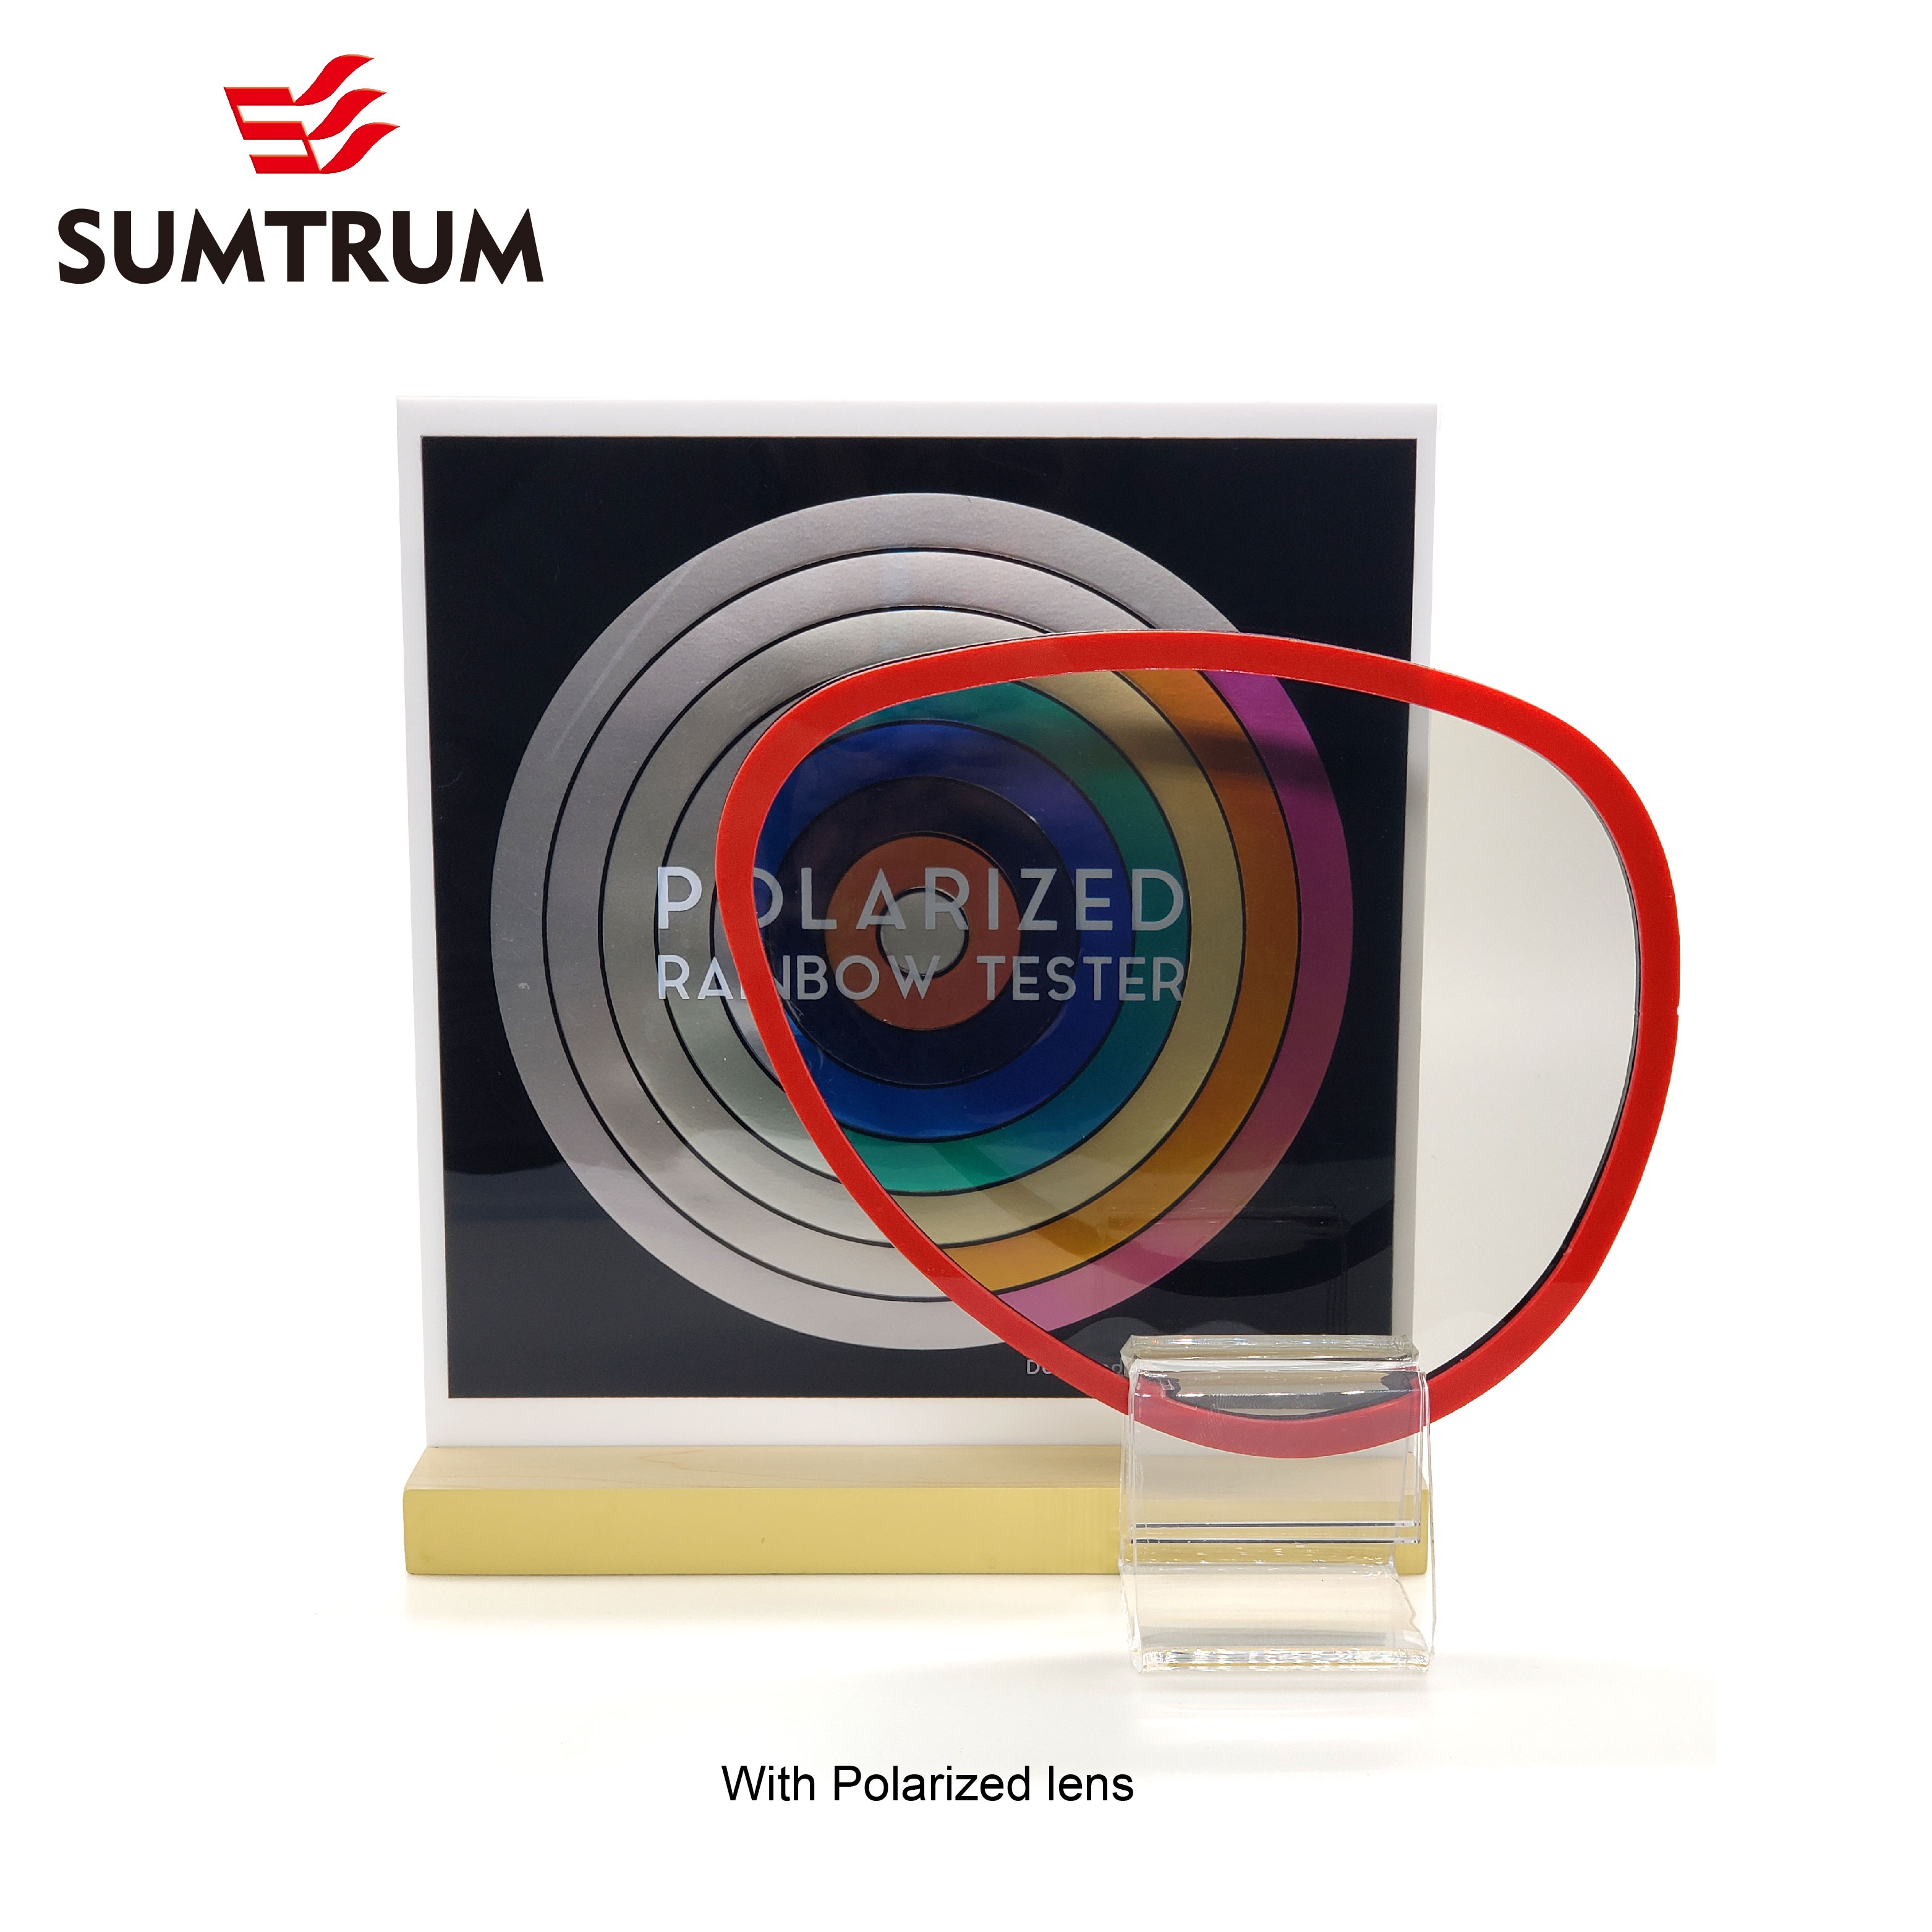 2020 New Rainbow effect Polarized Test and Mirror display combination